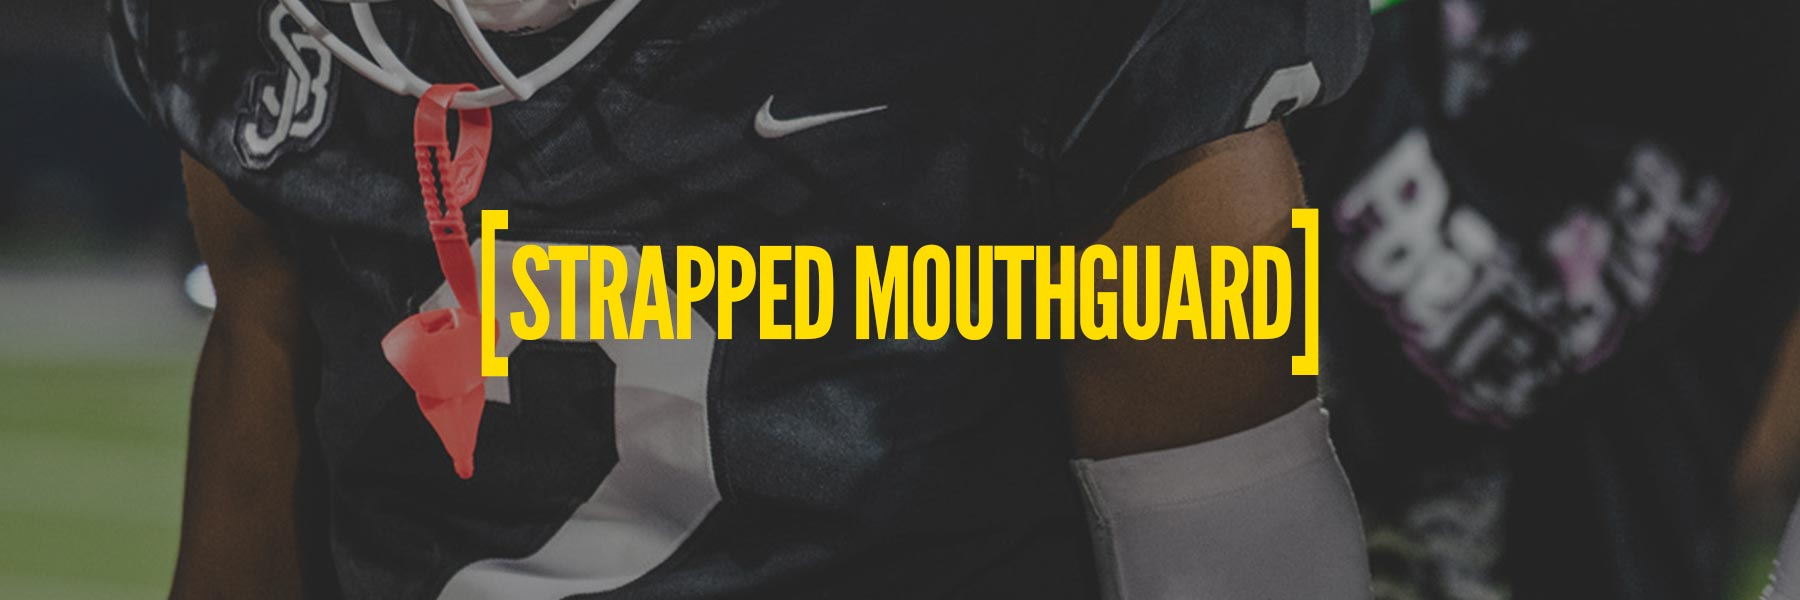 Mouthguard with strap